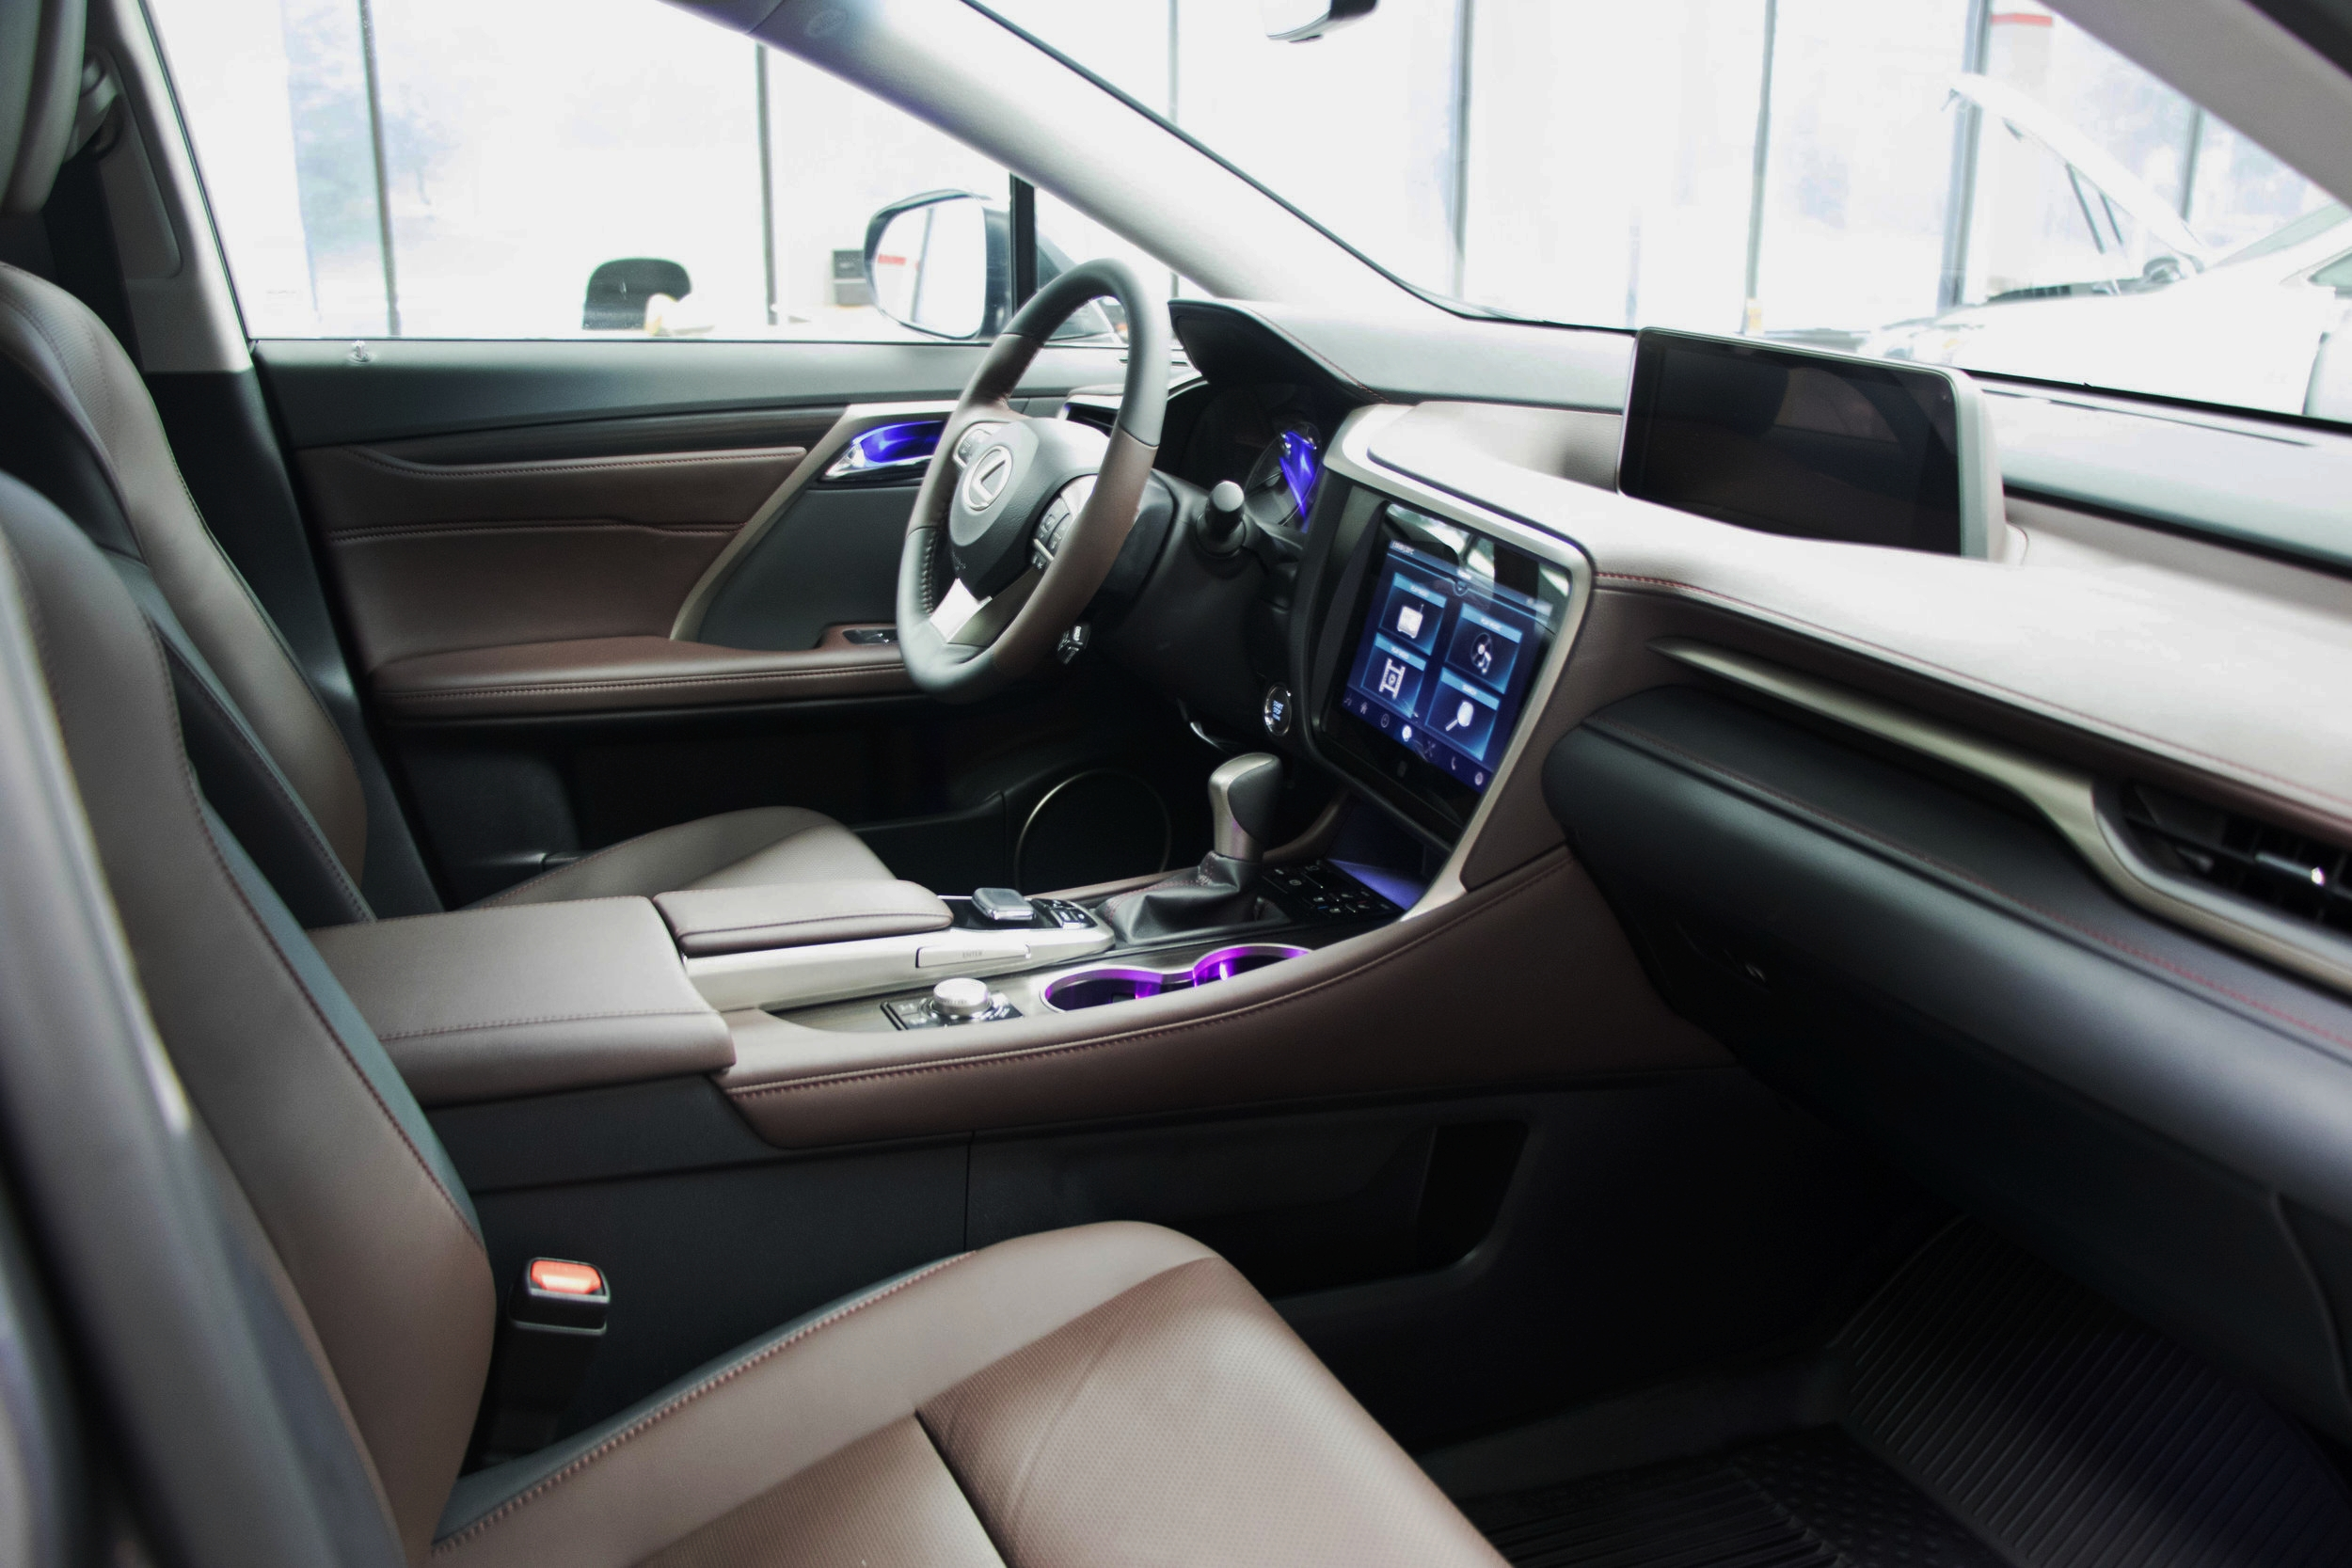 Lexus New Interior 01